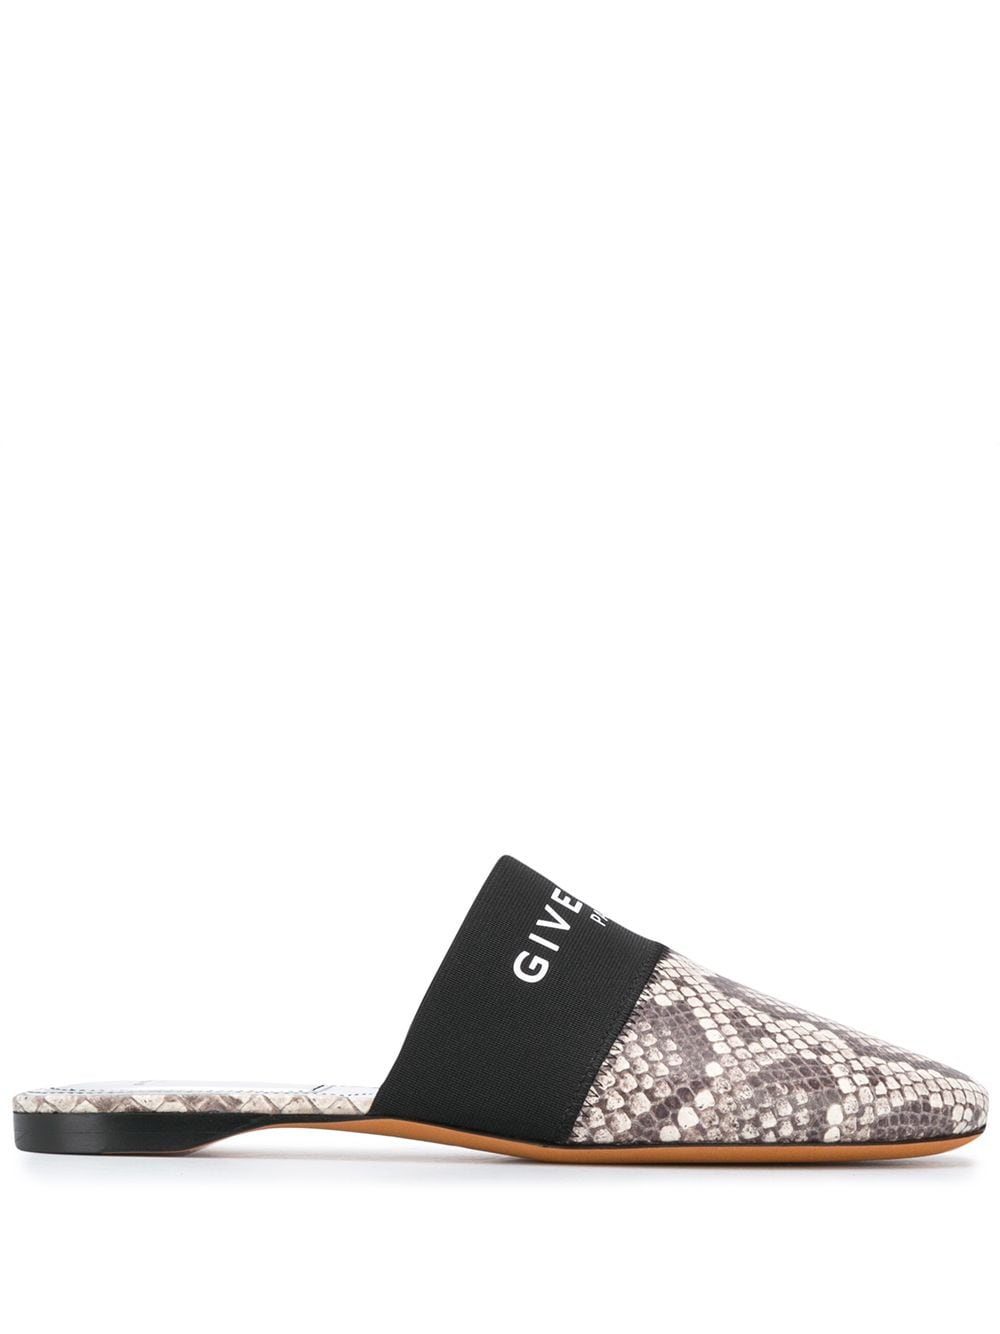 Brown/grey slippers, GIVENCHY |  | BE2002E0UB099